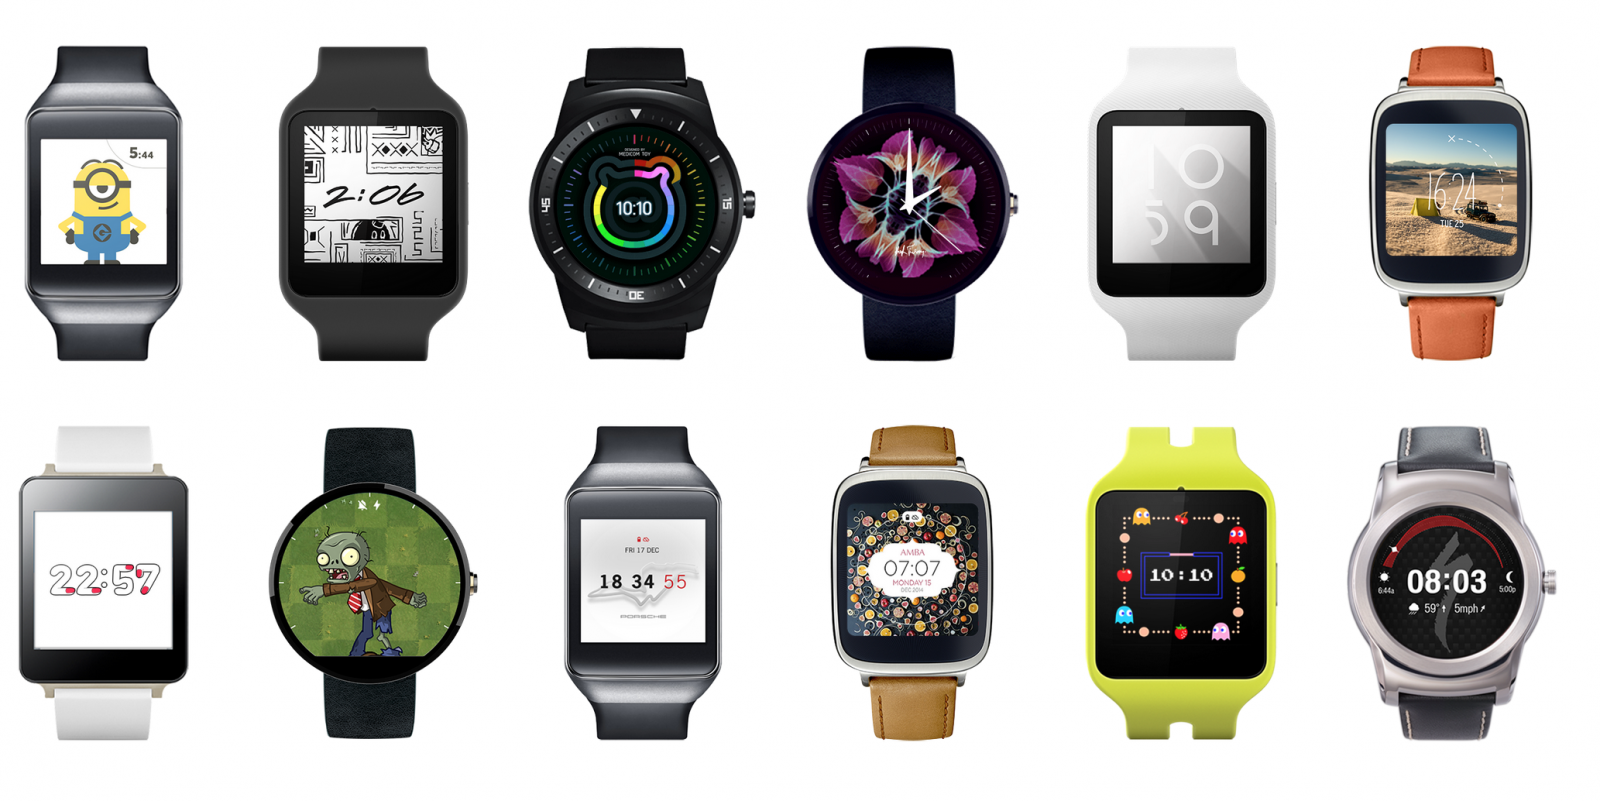 Android Wear 5.1 launches